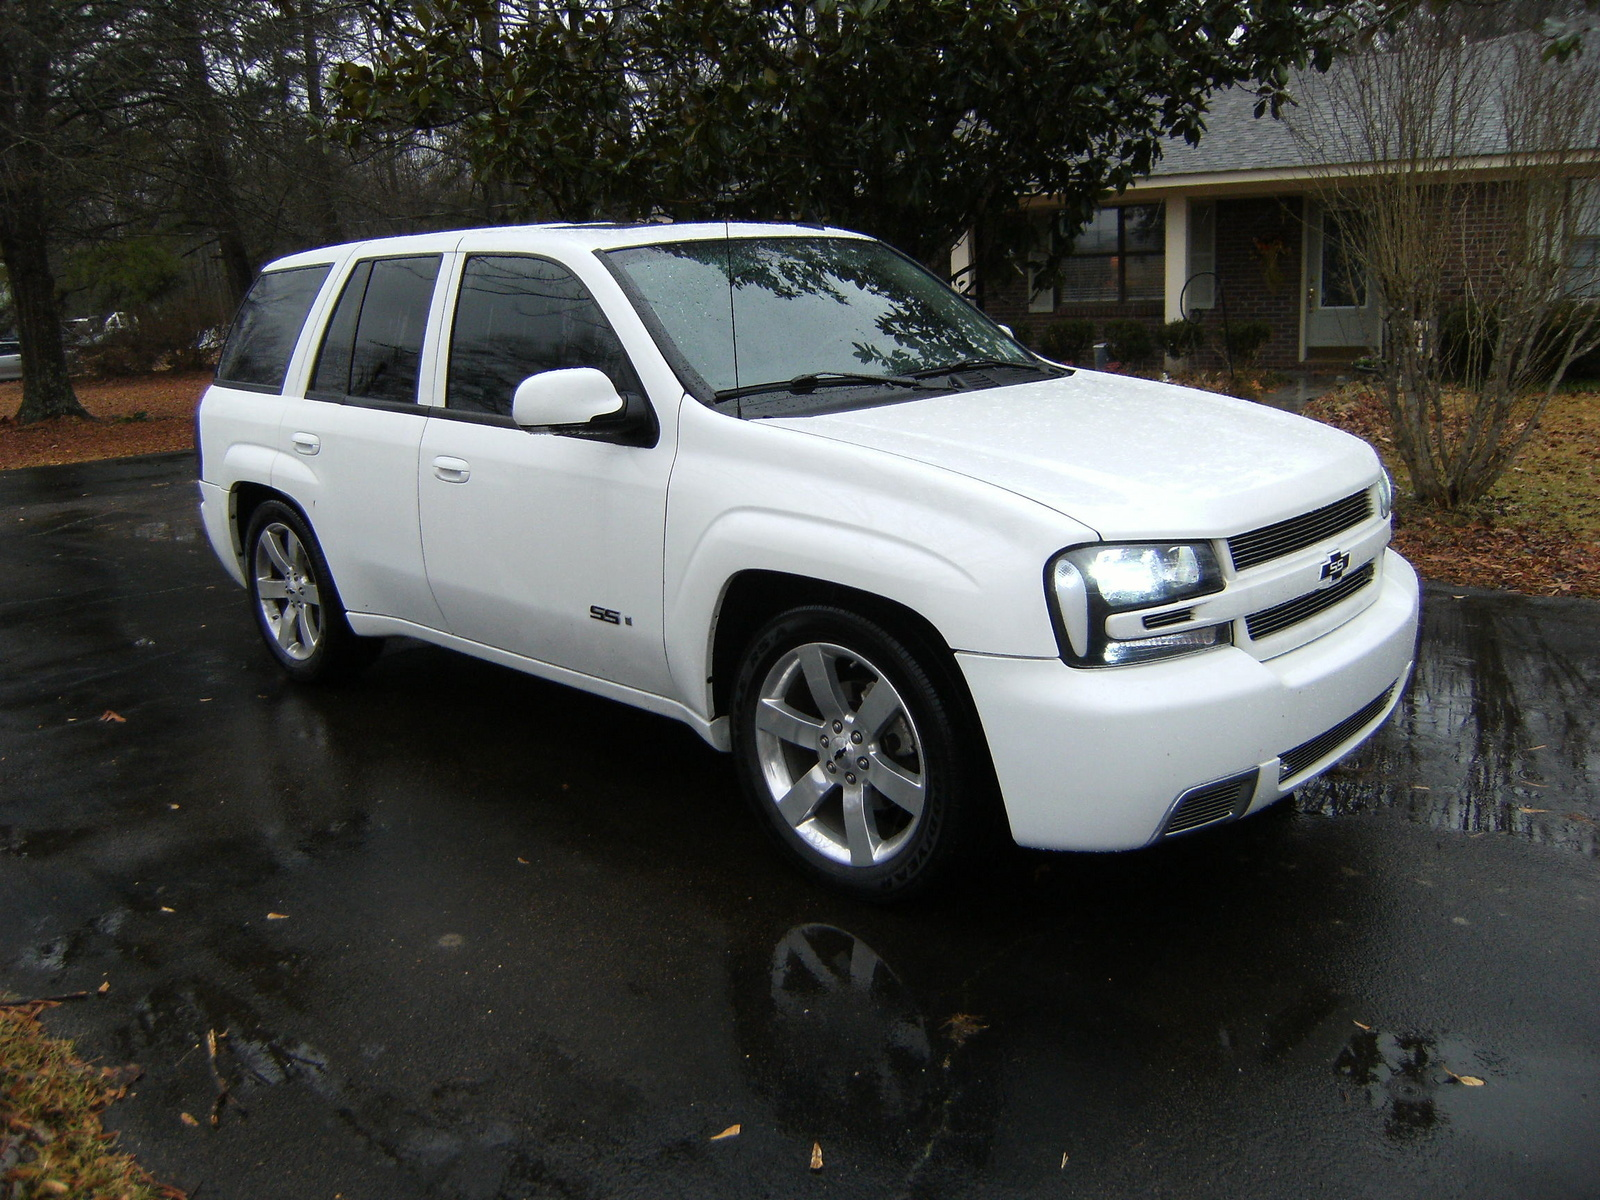 2007 Chevrolet TrailBlazer - Overview - CarGurus